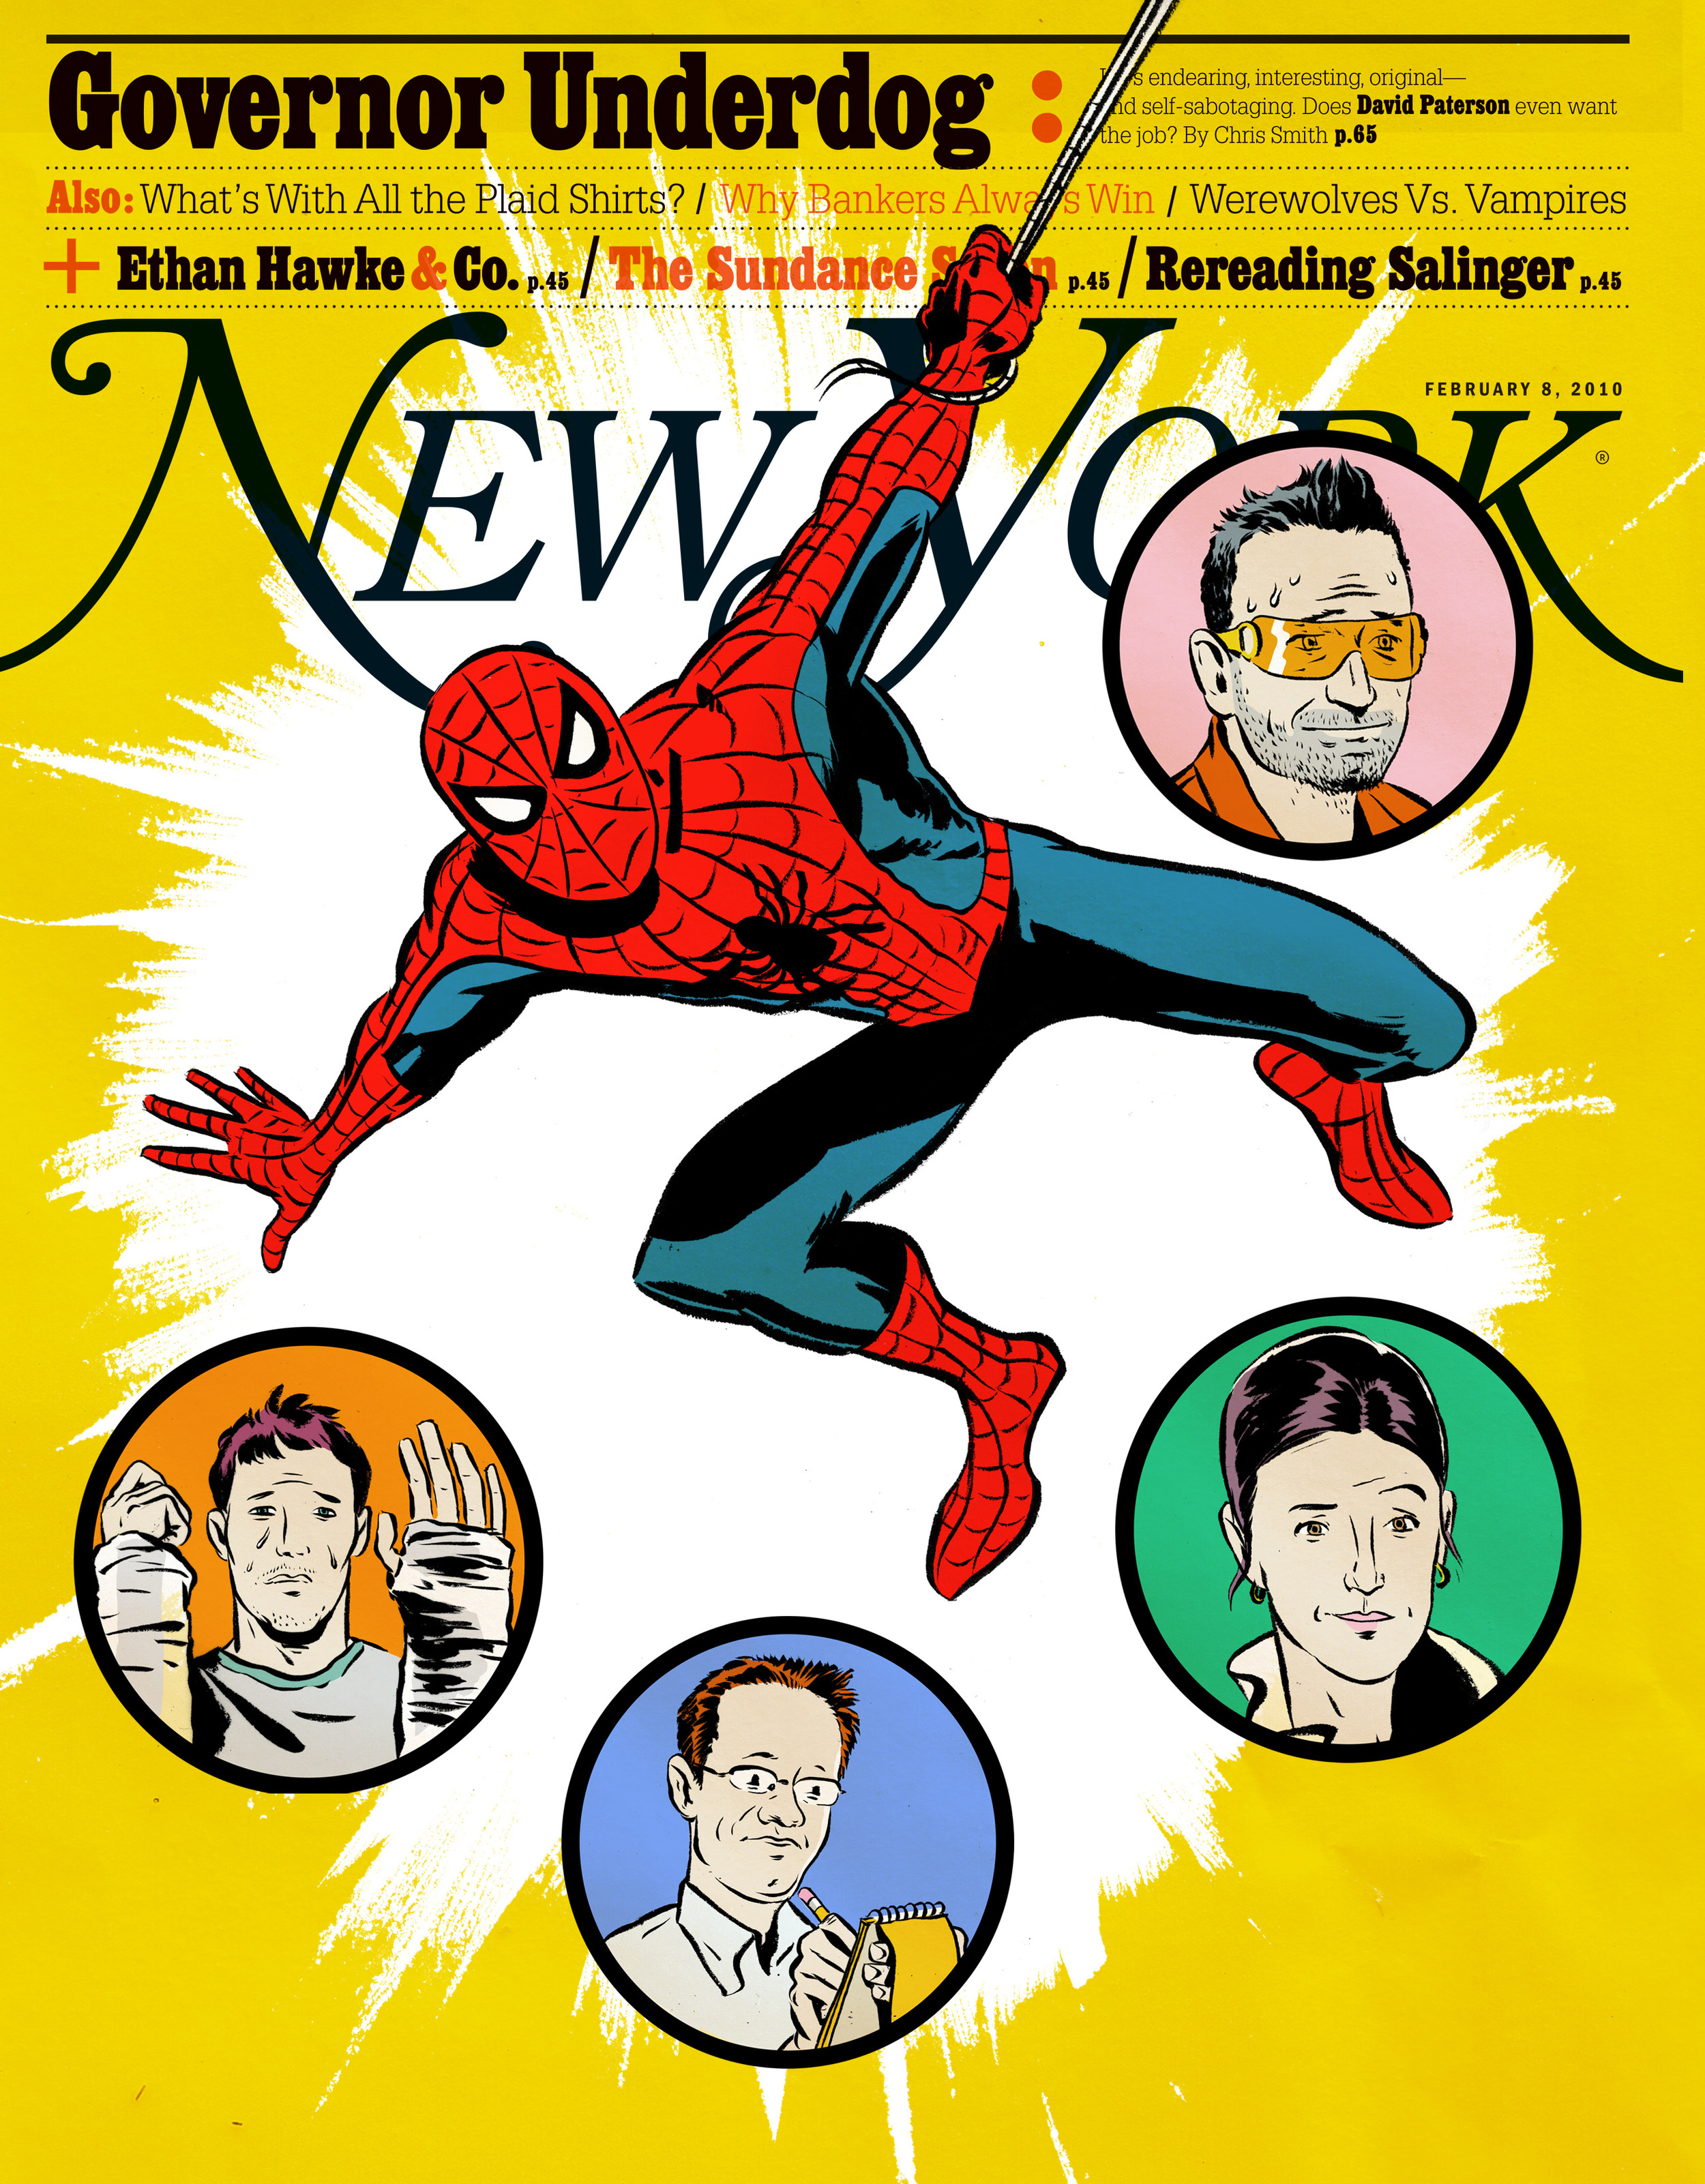 New York Magazine : Cover illustration for feature about the troubles plaguing the Spider Man on Broadway. (Sadly, it did not run)